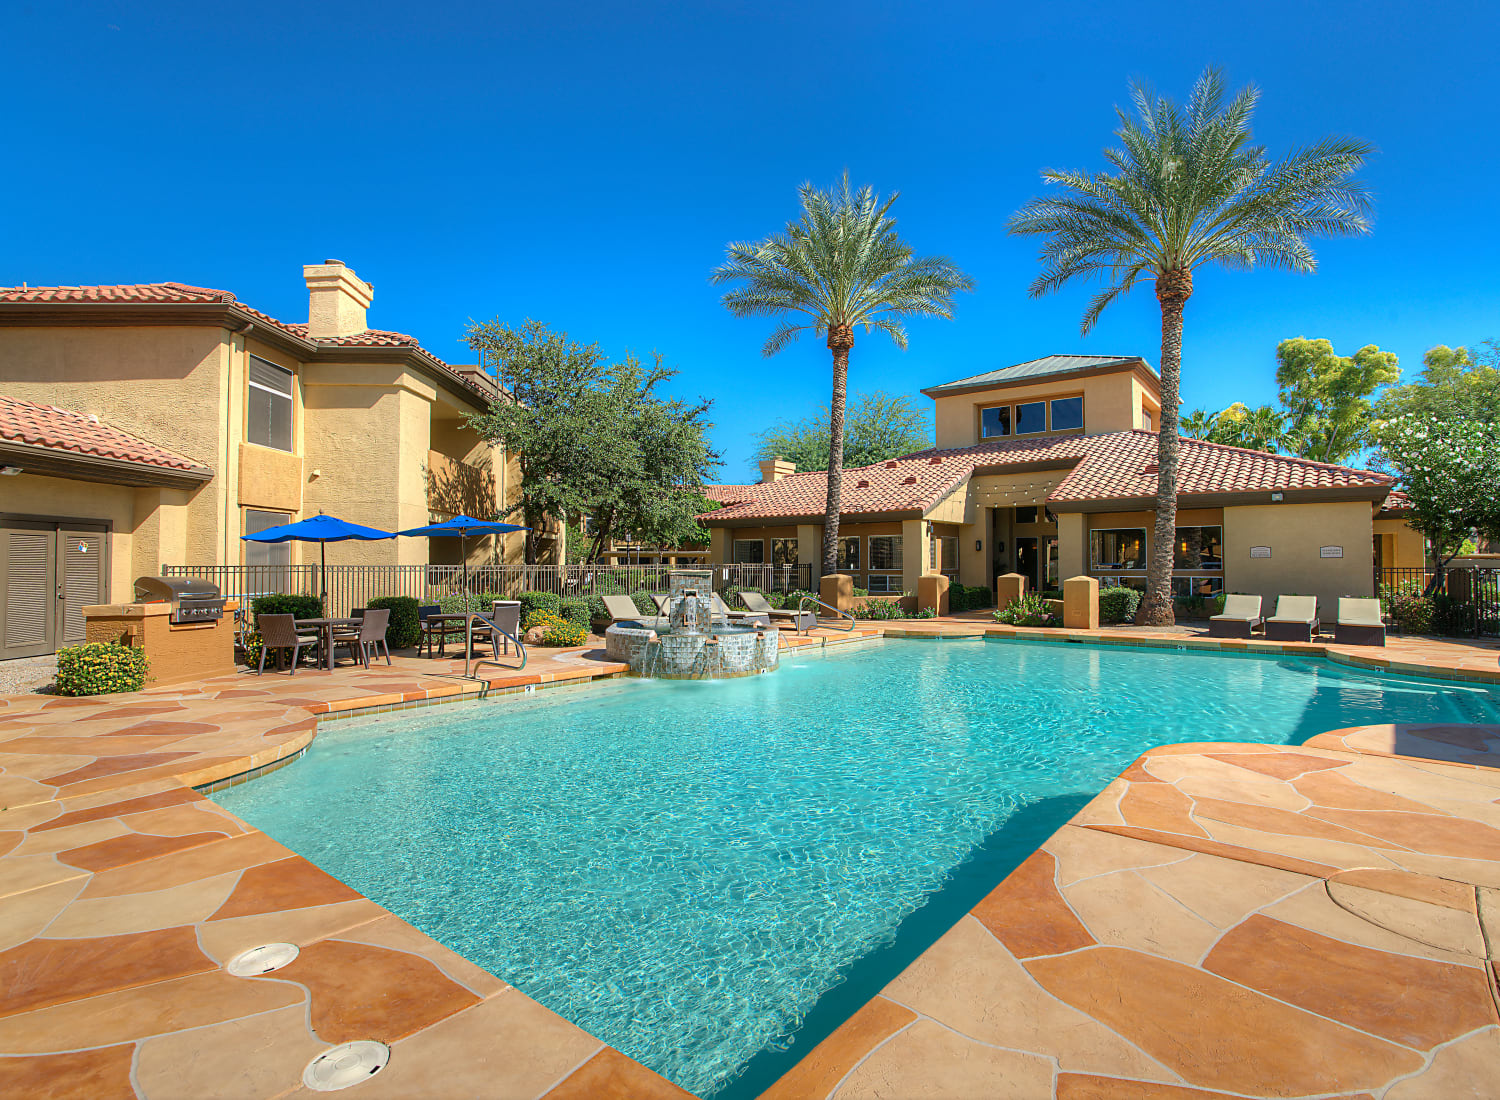 Bellagio apartments in Scottsdale, Arizona